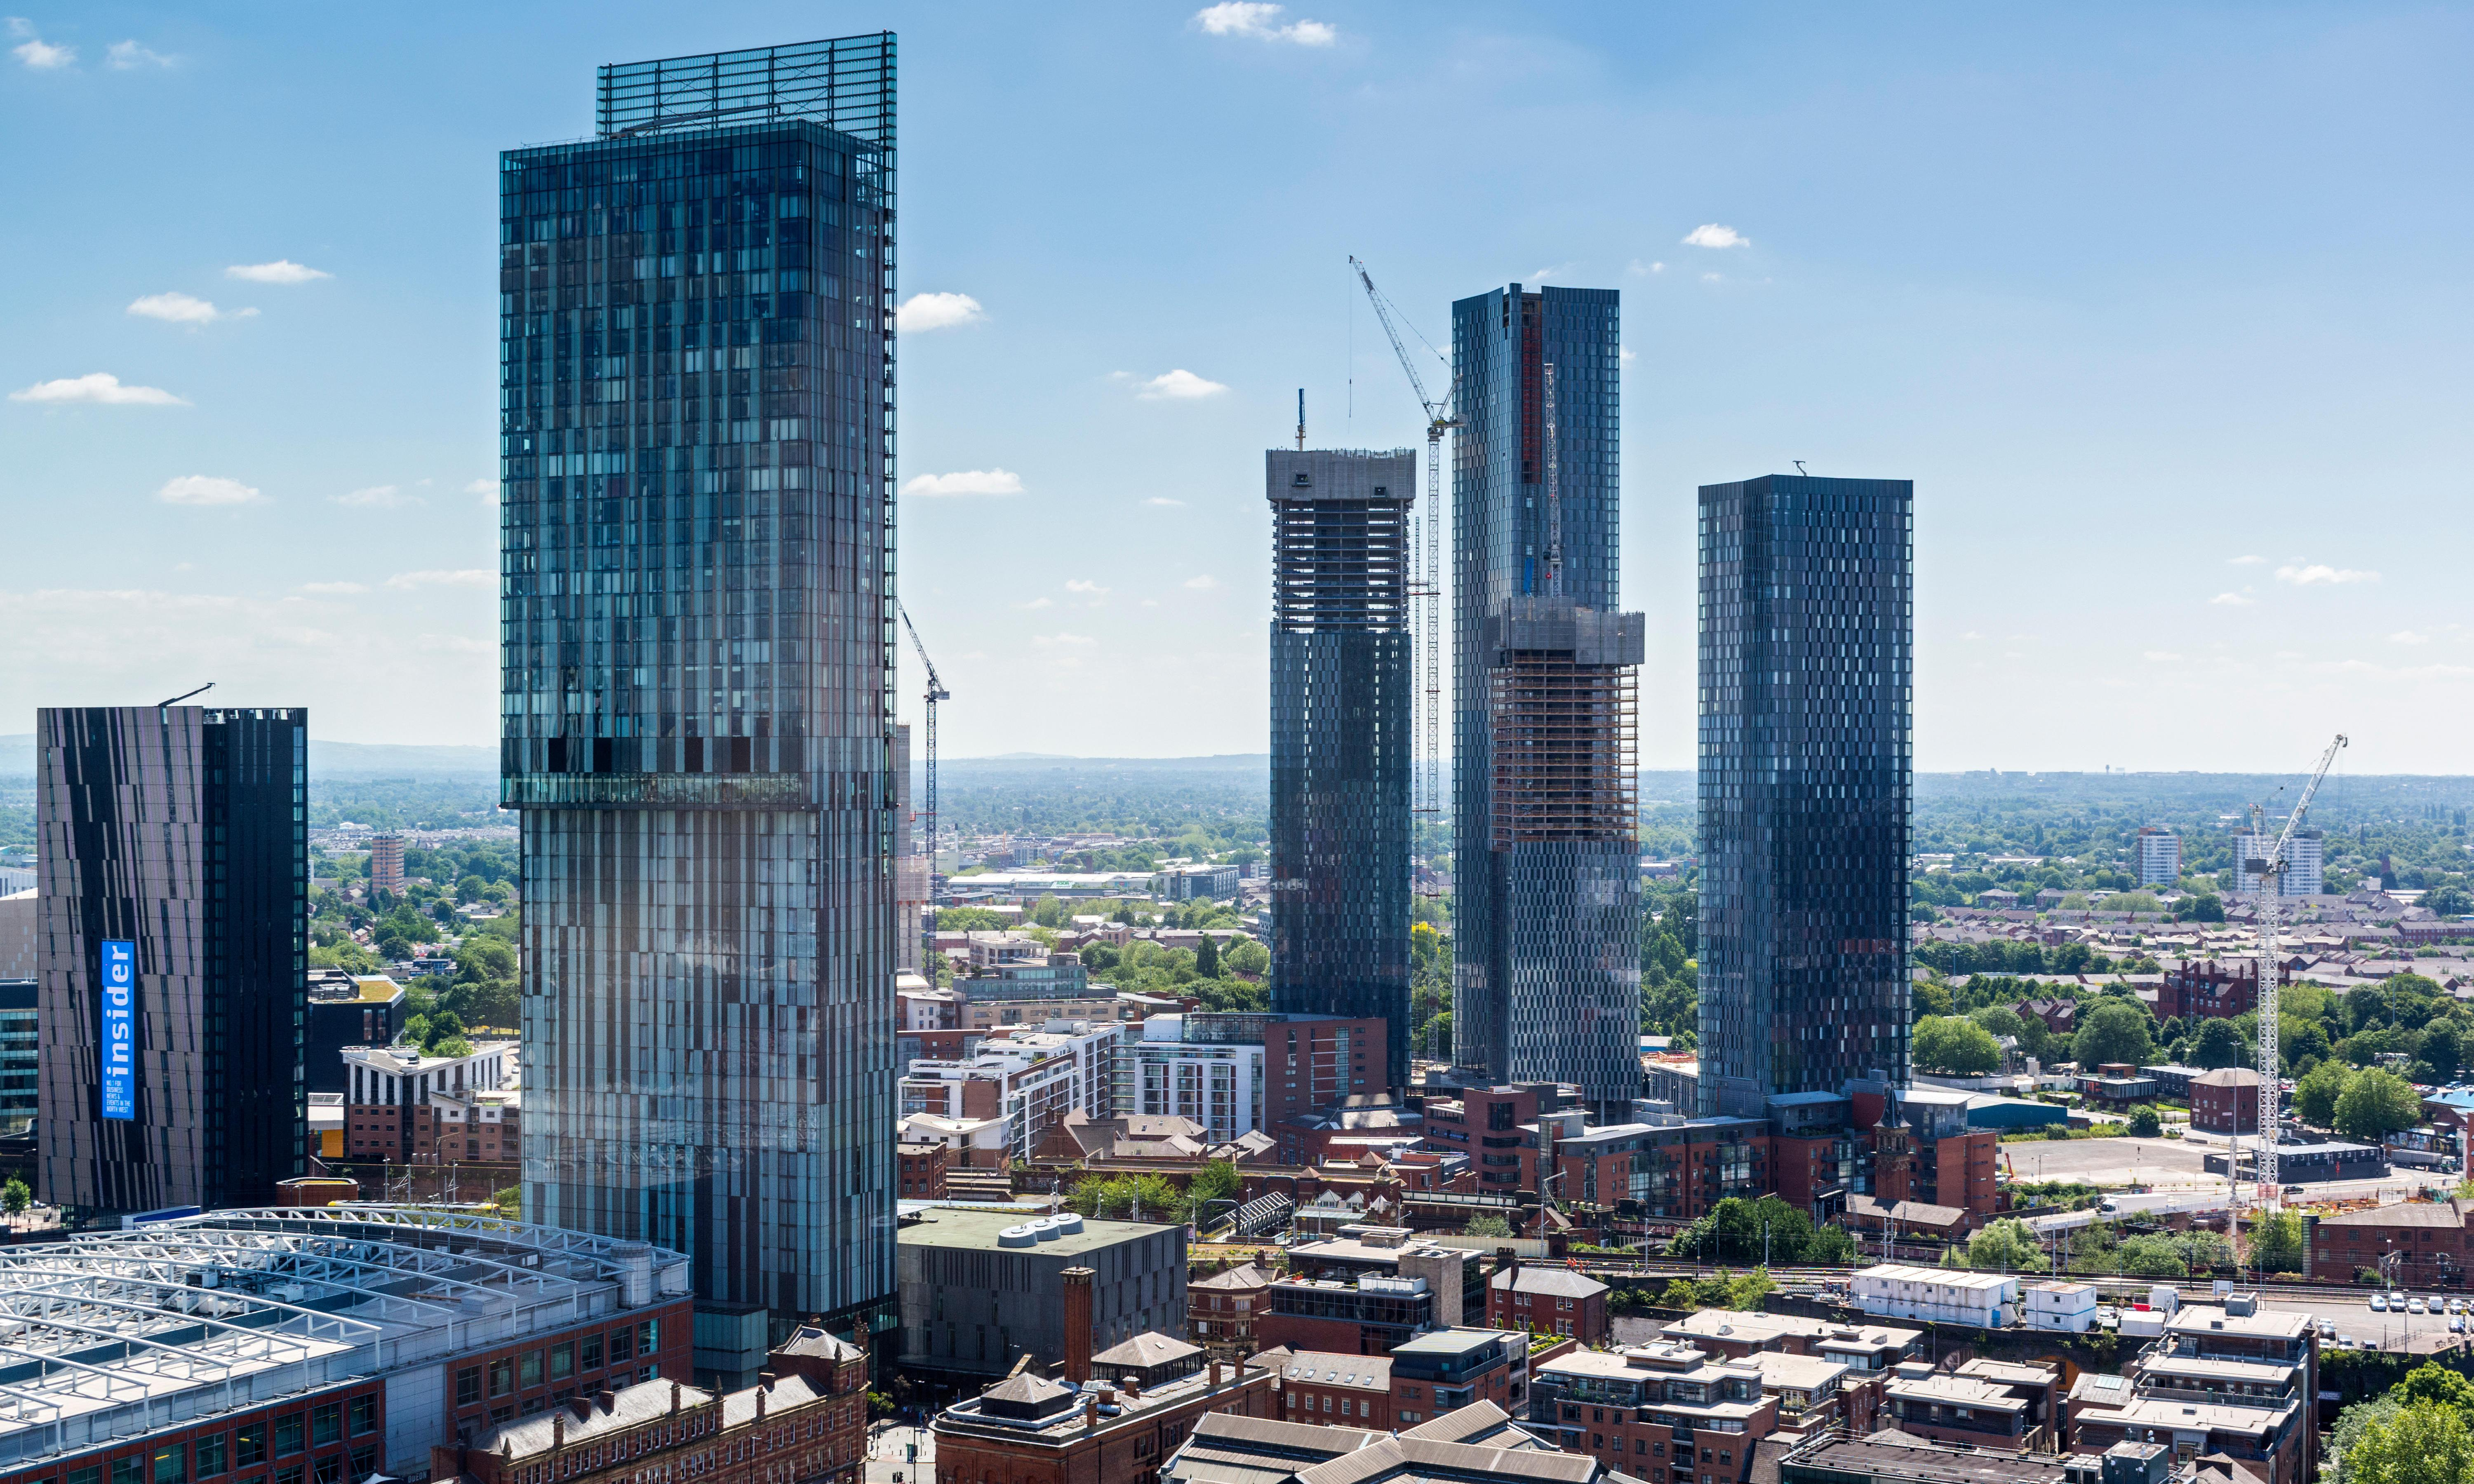 Welcome to Manc-hattan: how the city sold its soul for luxury skyscrapers